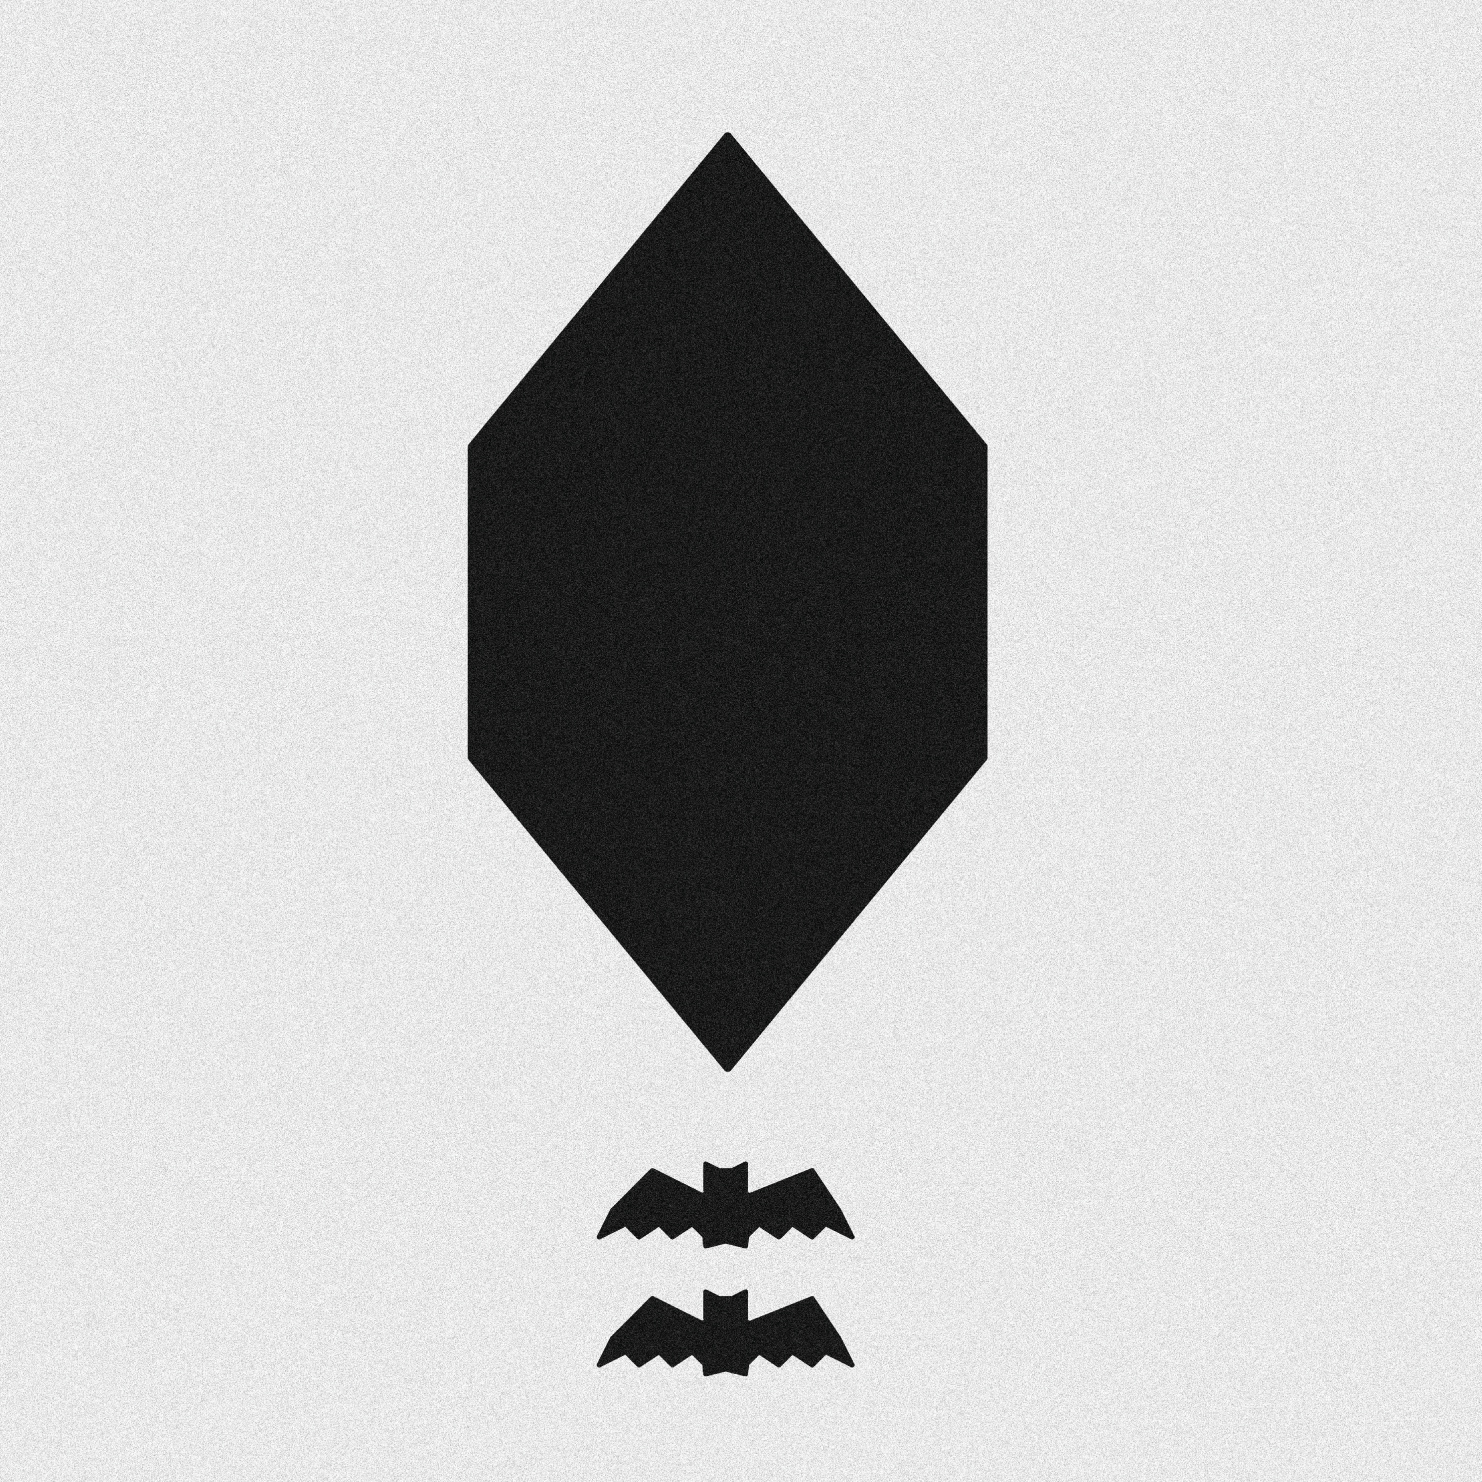 Motorpsycho - Here Be Monsters [2xLP]